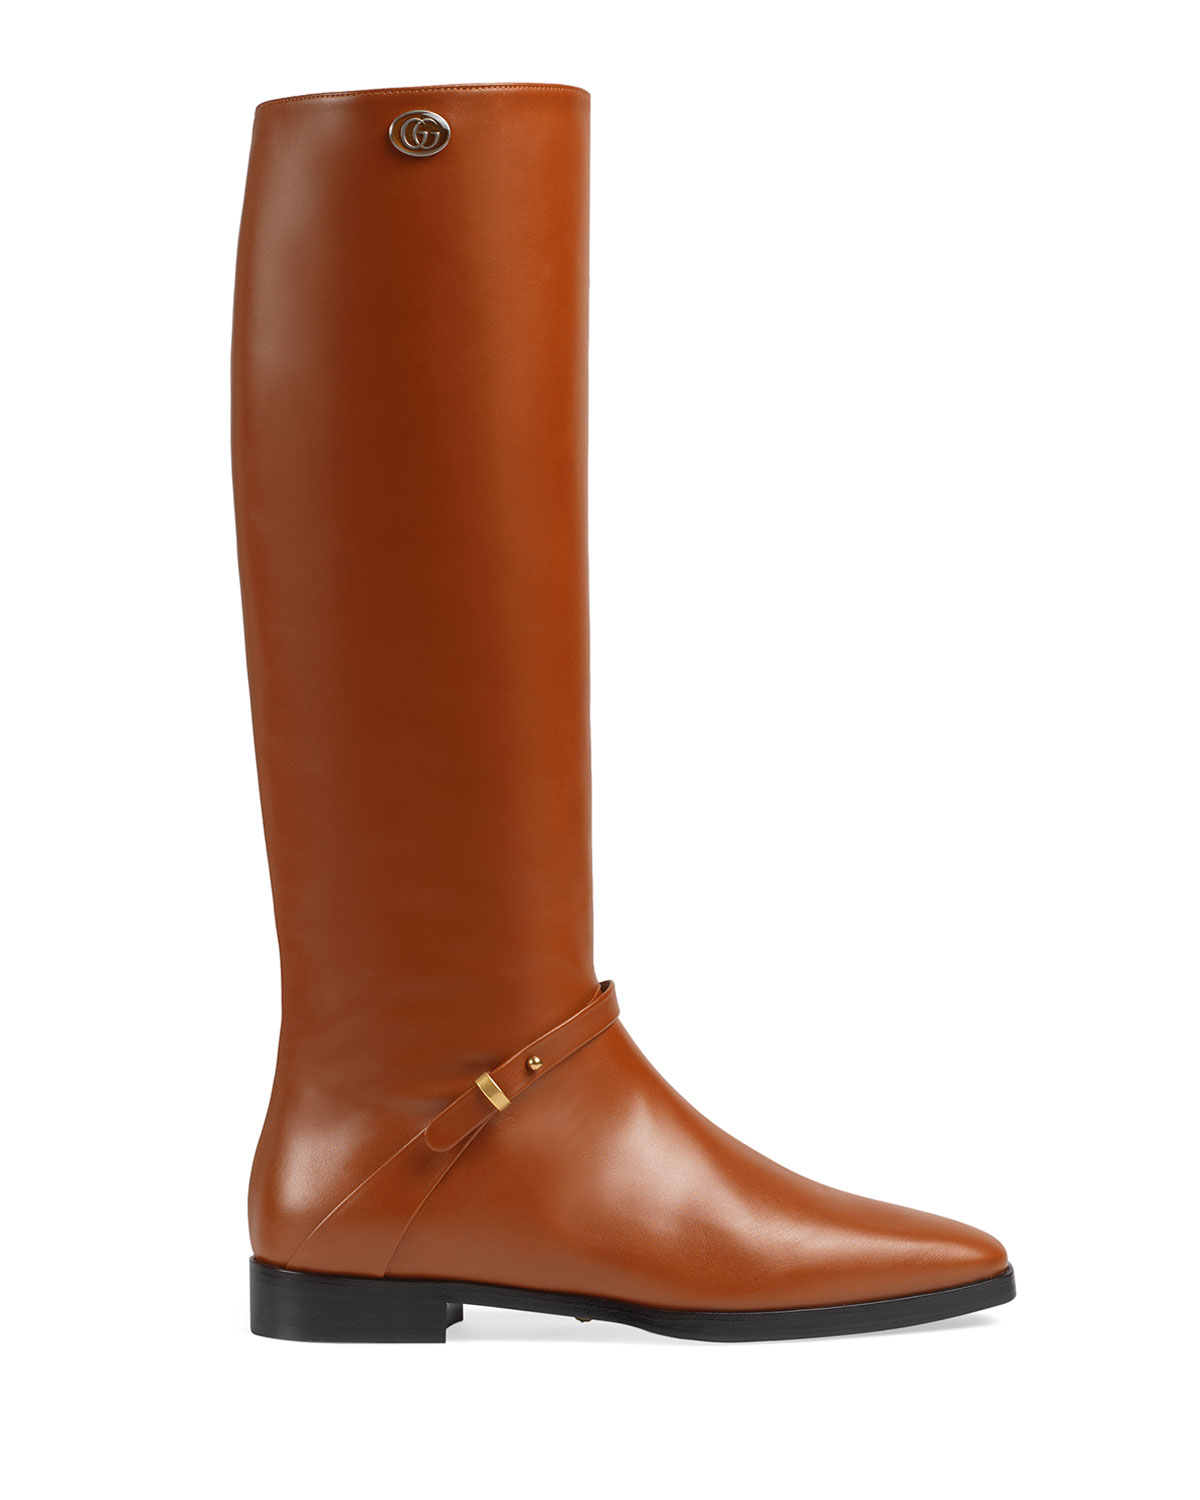 Rosie 25mm Leather Riding Boots by Gucci